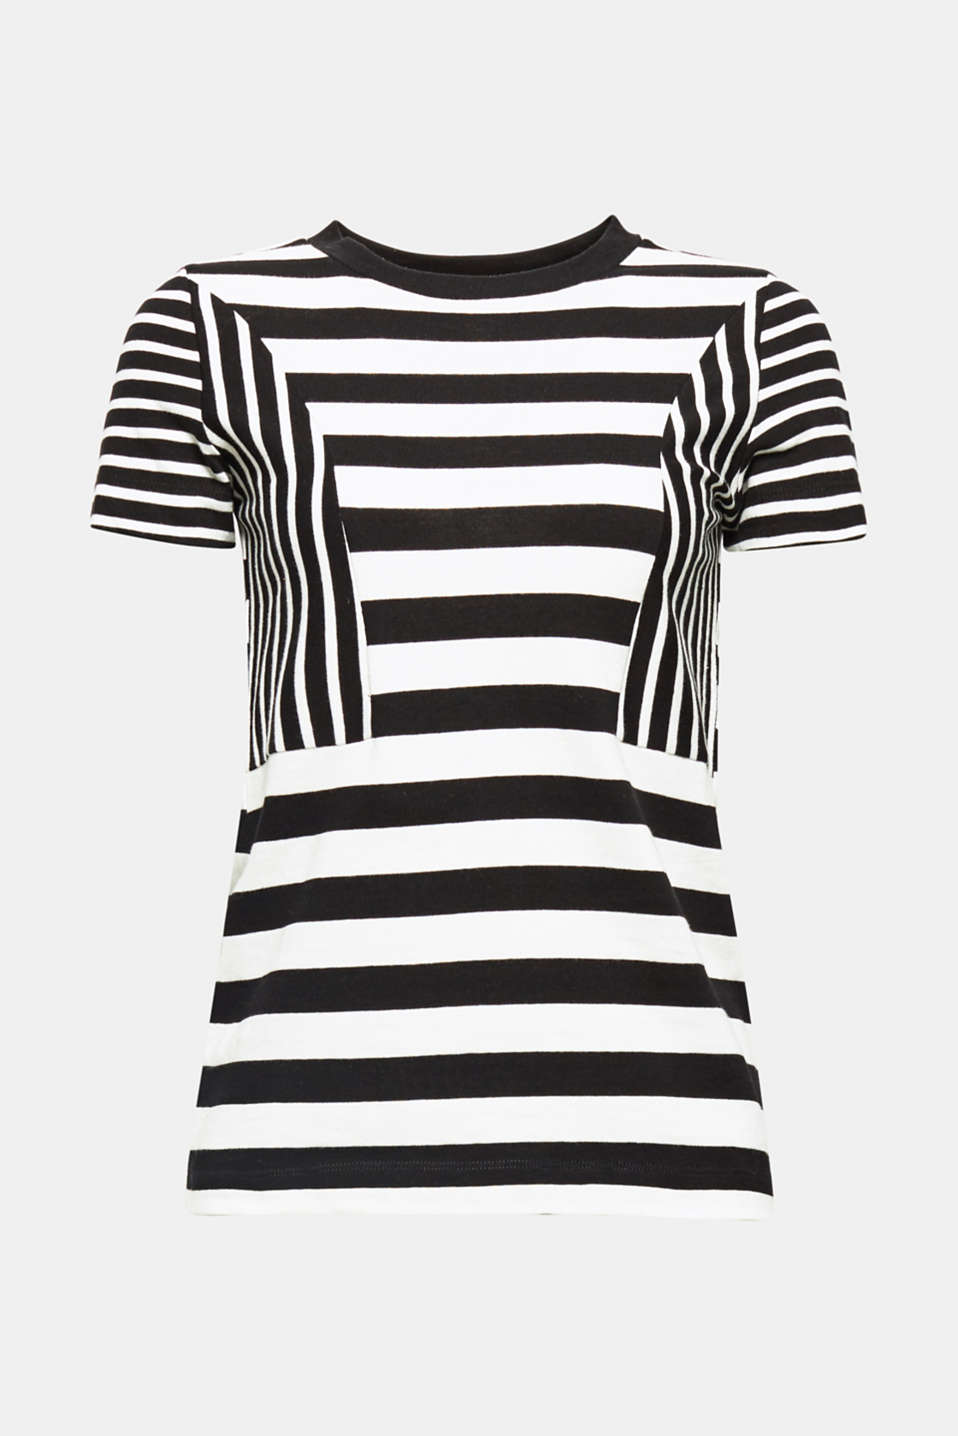 This cotton knit T-shirt with a varied striped pattern stands out thanks to its sophisticated look and high level of comfort.